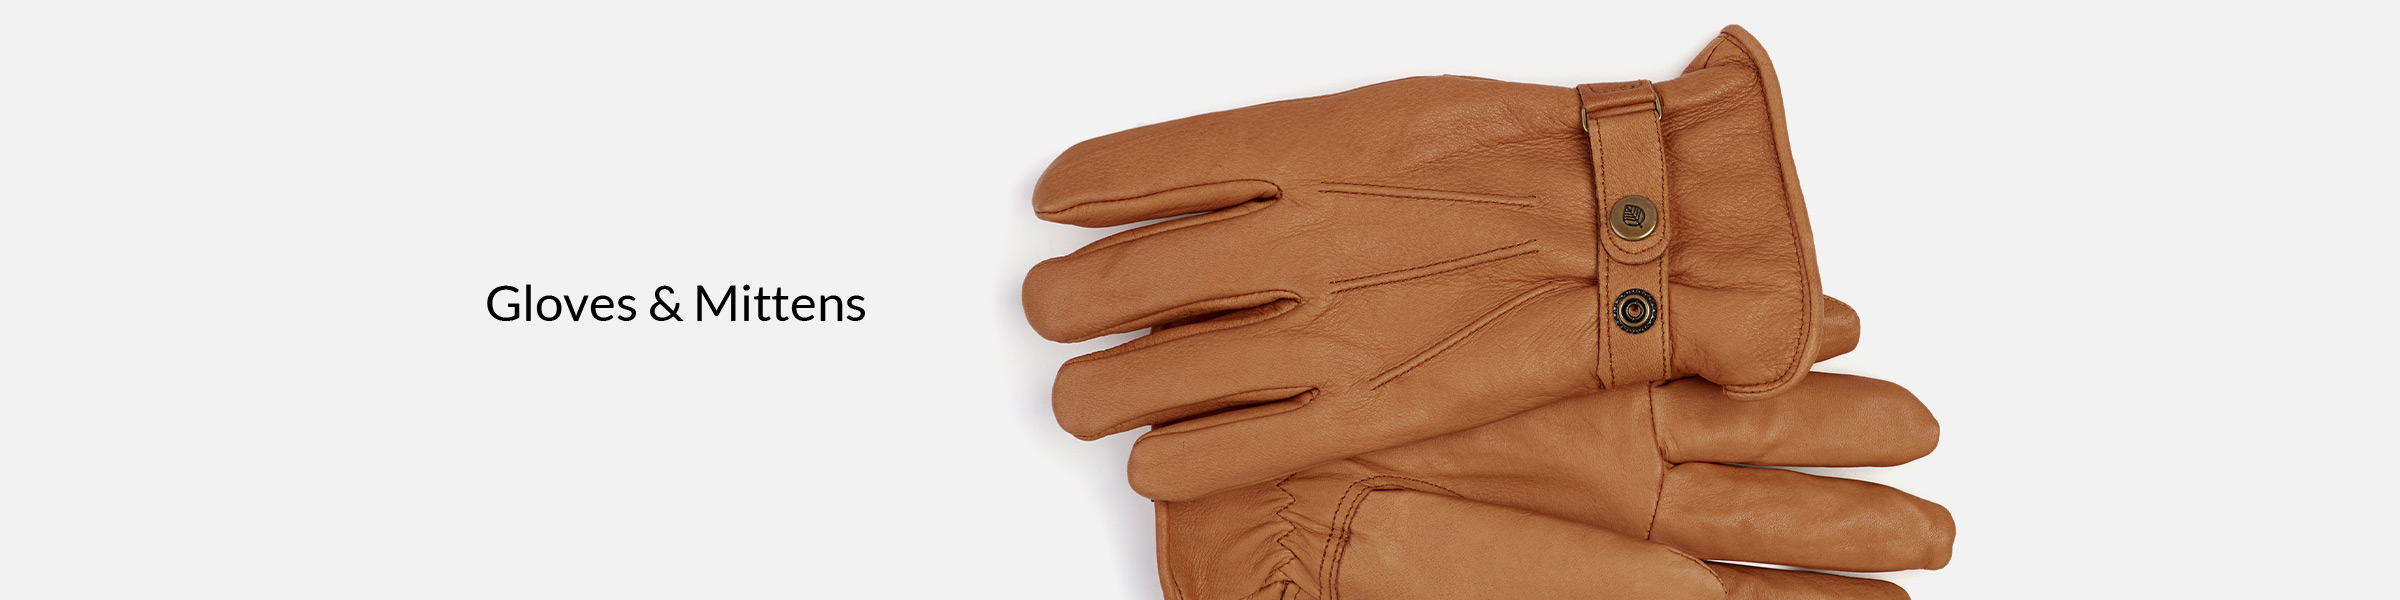 d1202b51eddc0 Shop Mens Suede   Leather Gloves   Mittens in Canada